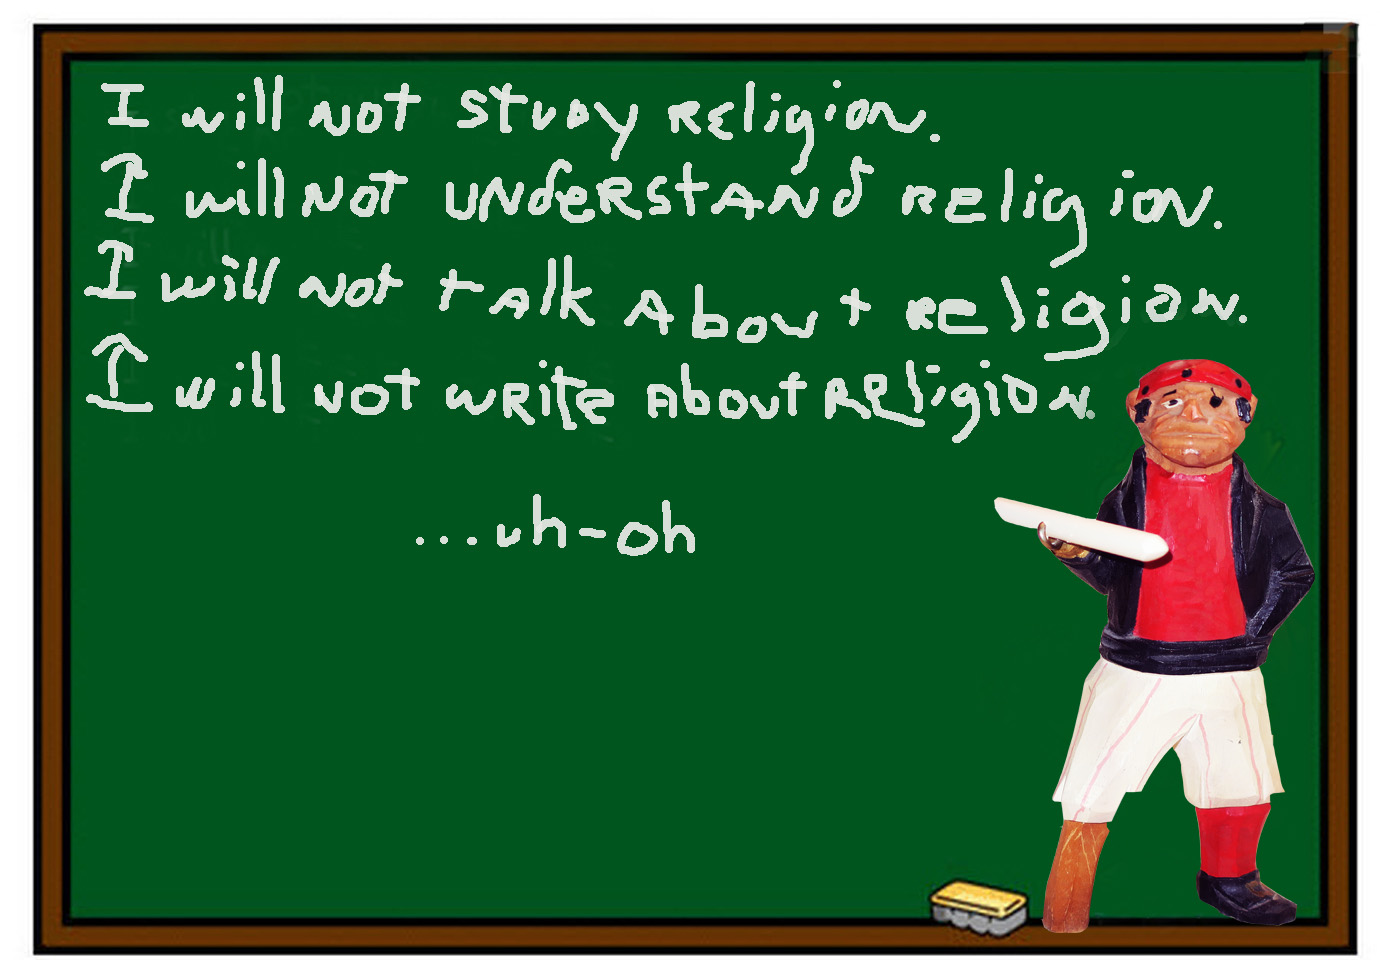 teaching about religion in public schools